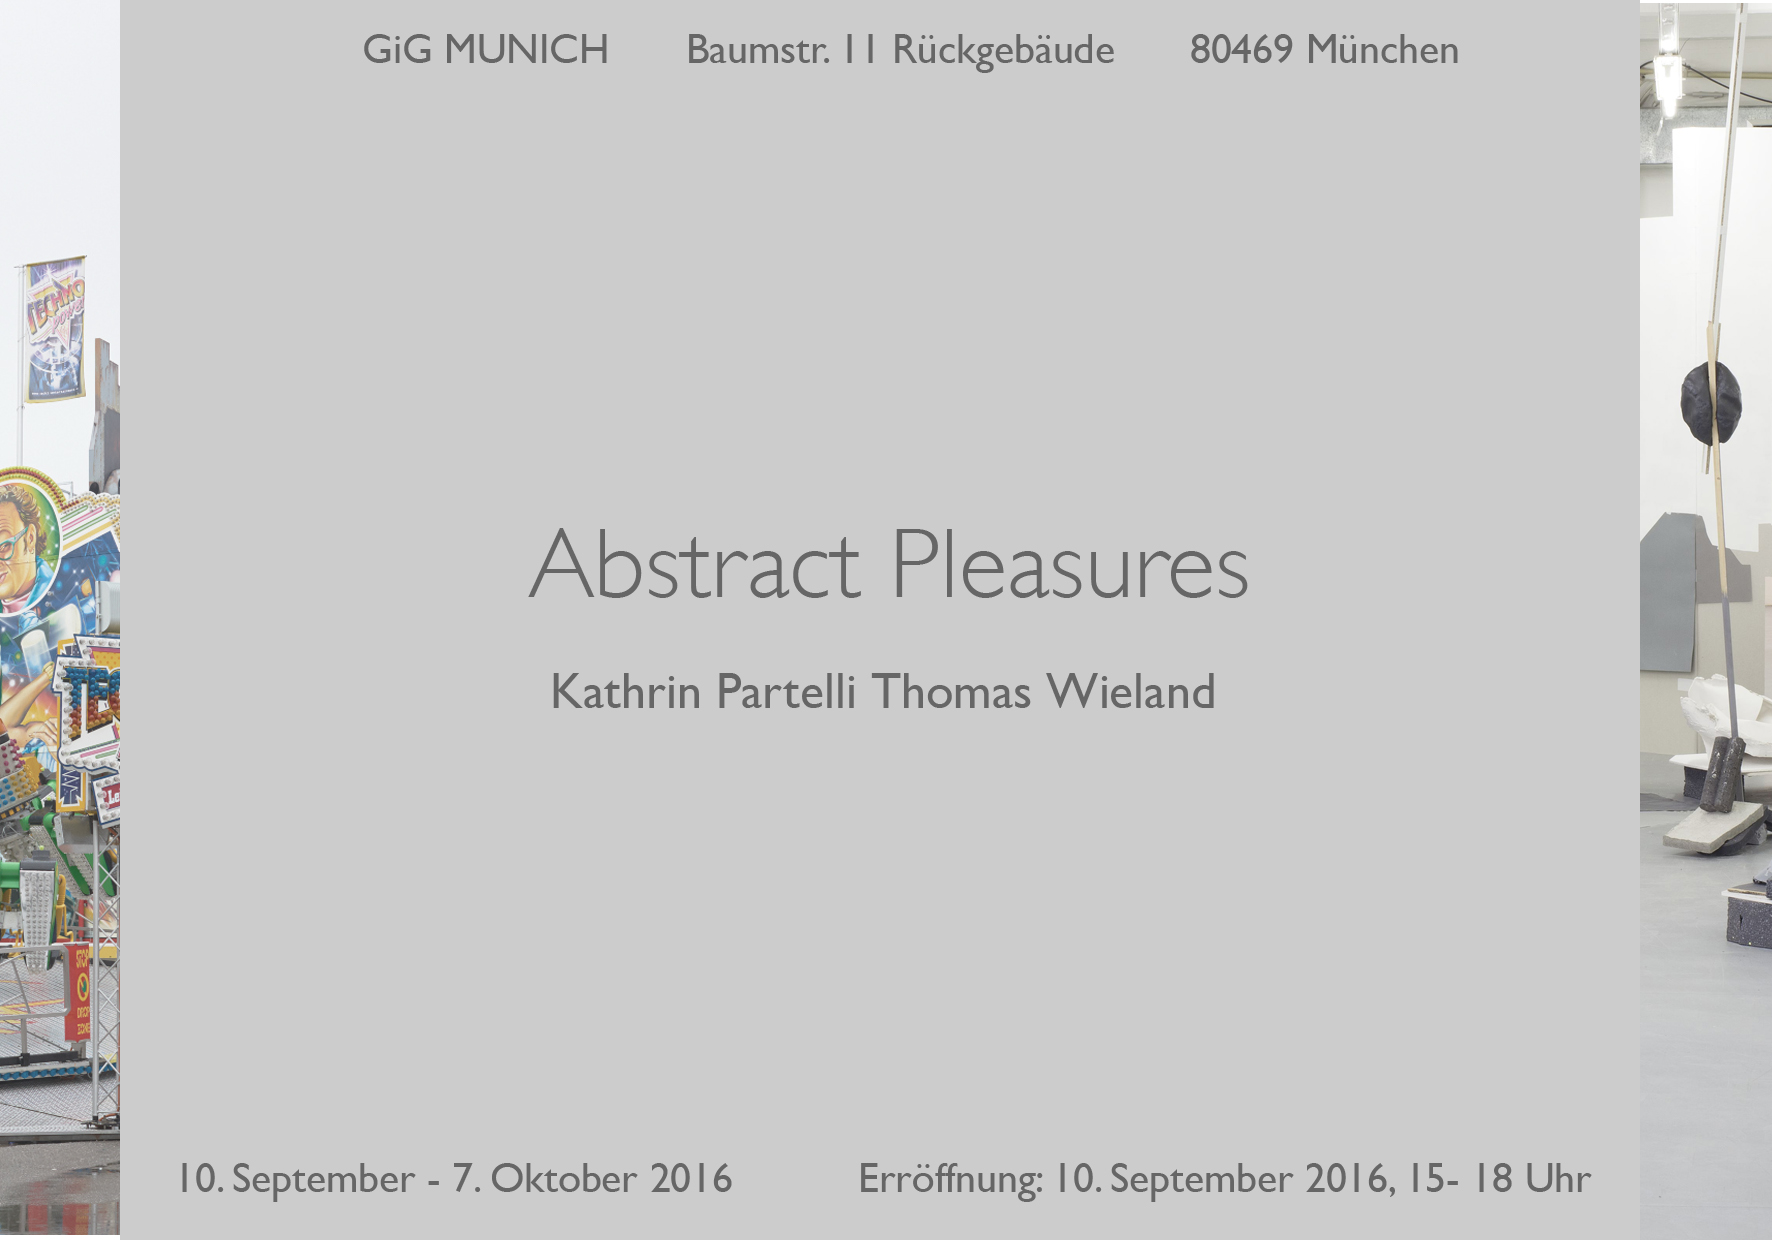 Abstract pleasures web